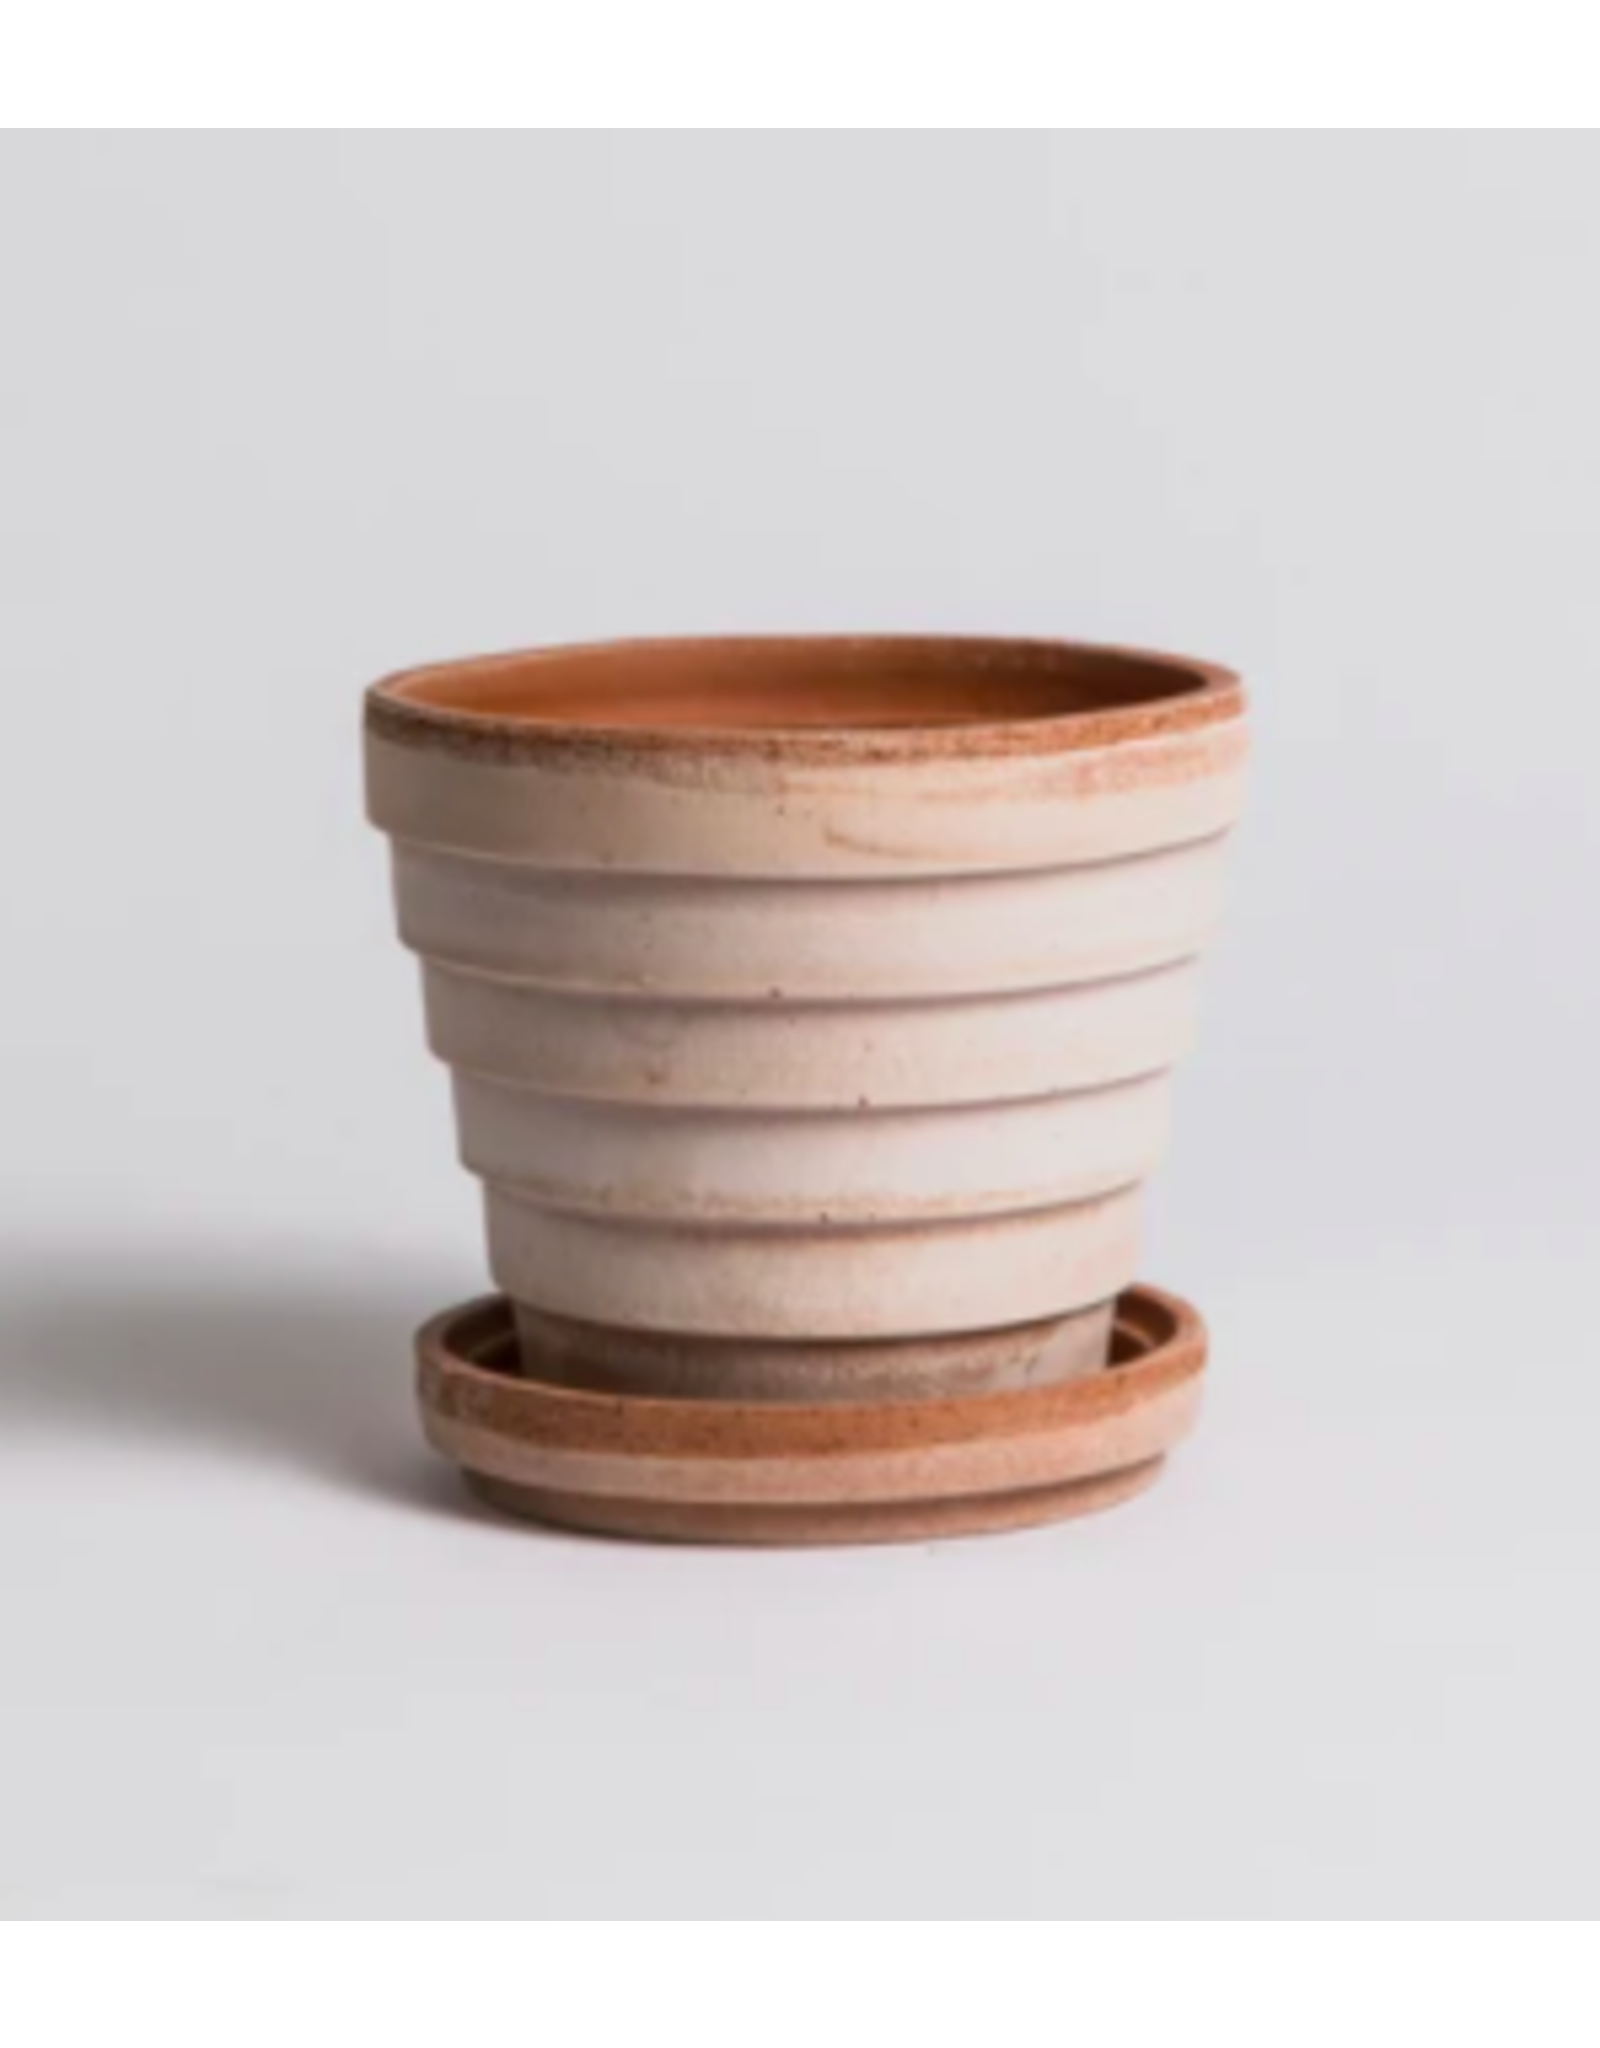 Bergs Potter Planet Pots in Rose + Saucer by Bergs Potter